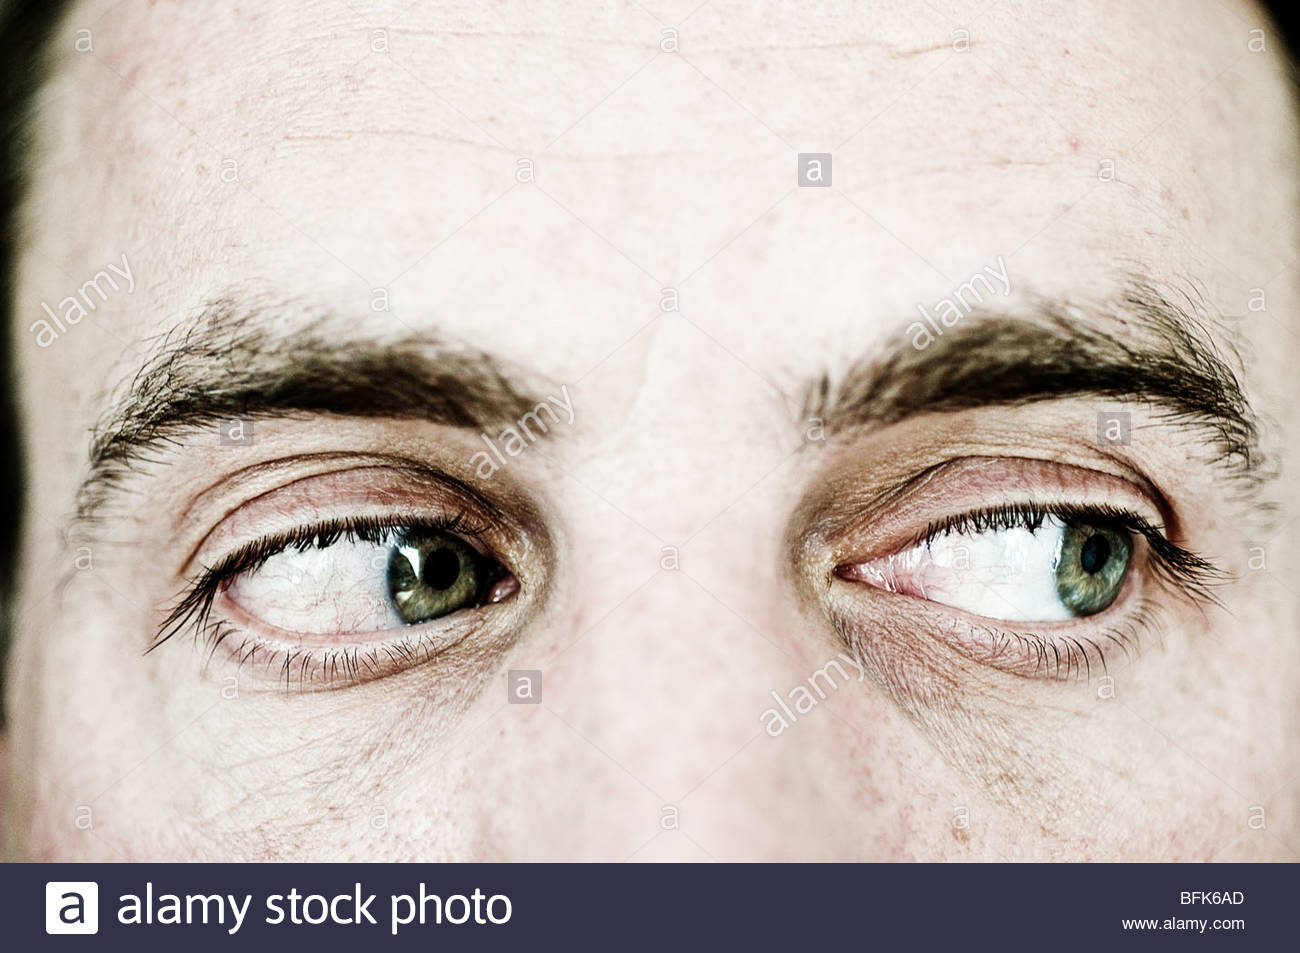 Man looking right - Stock Image